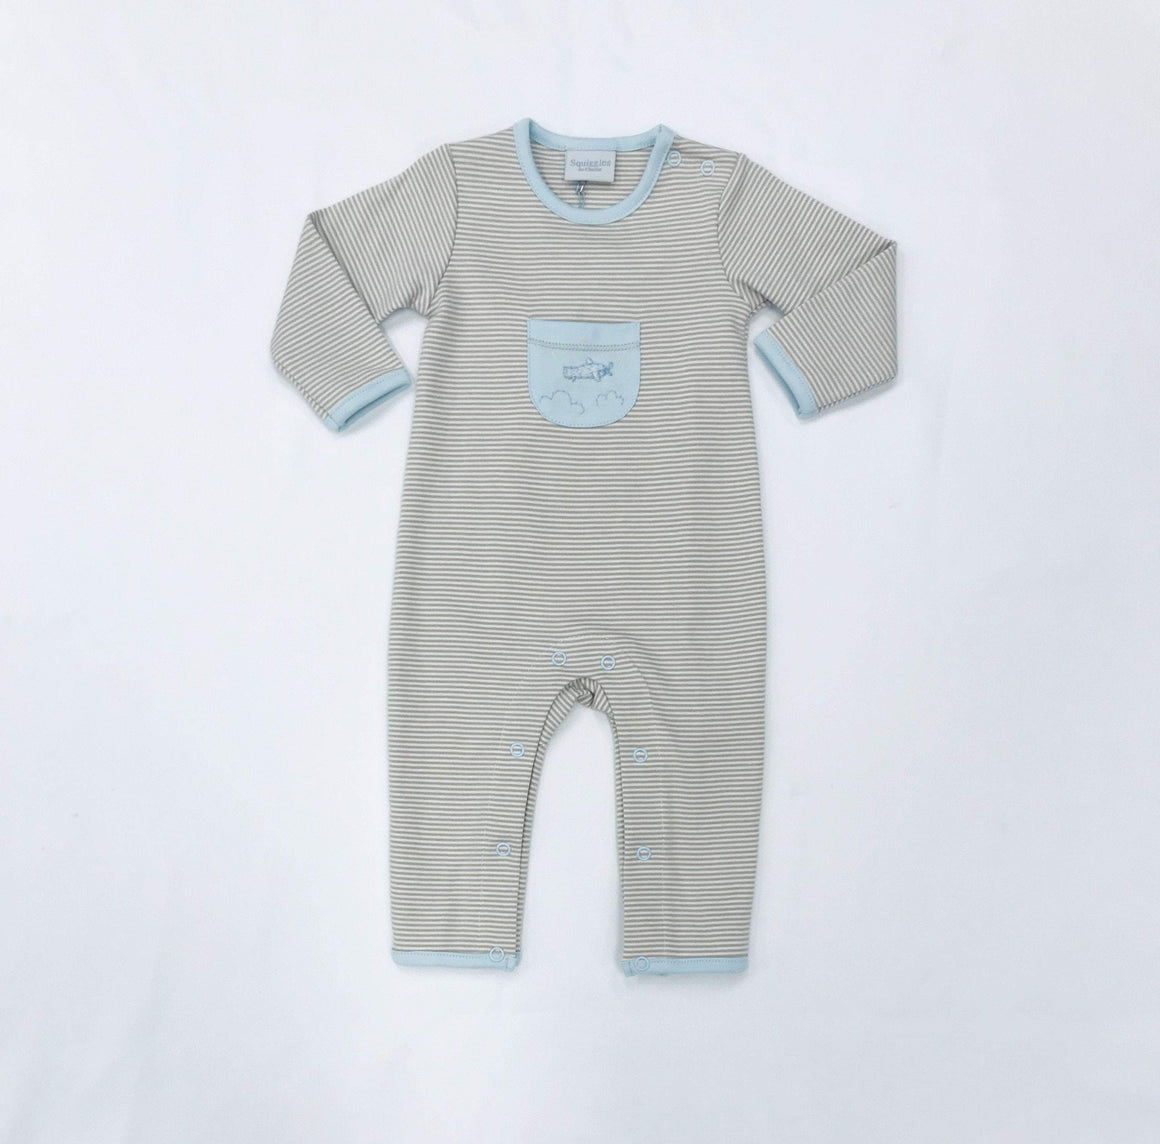 Squiggles by Charlie Boys Apparel Squiggles by Charlie Boys Airplane Embroidery Front Pocket Stripe Longall